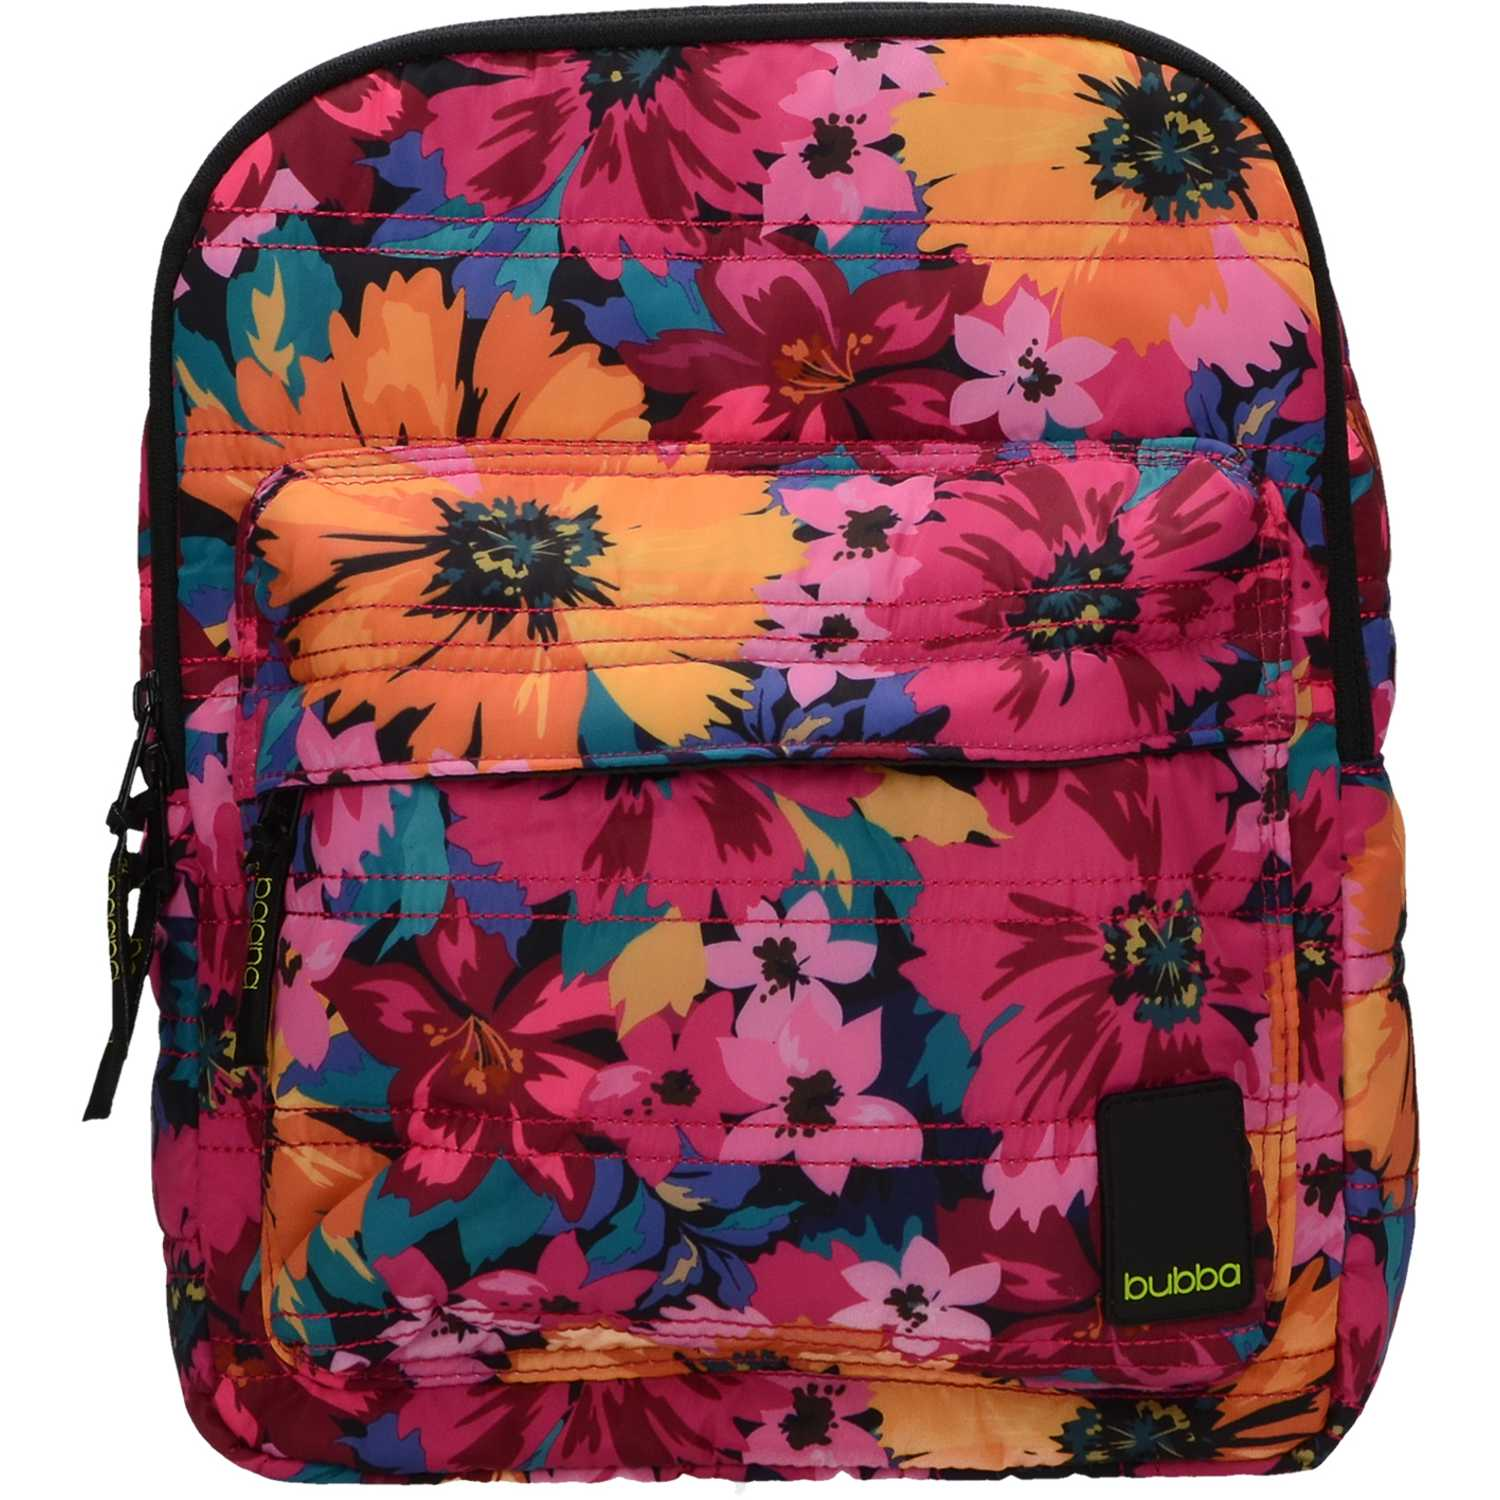 BUBBA mochila bubba pattern mini Varios Mochilas Multipropósitos